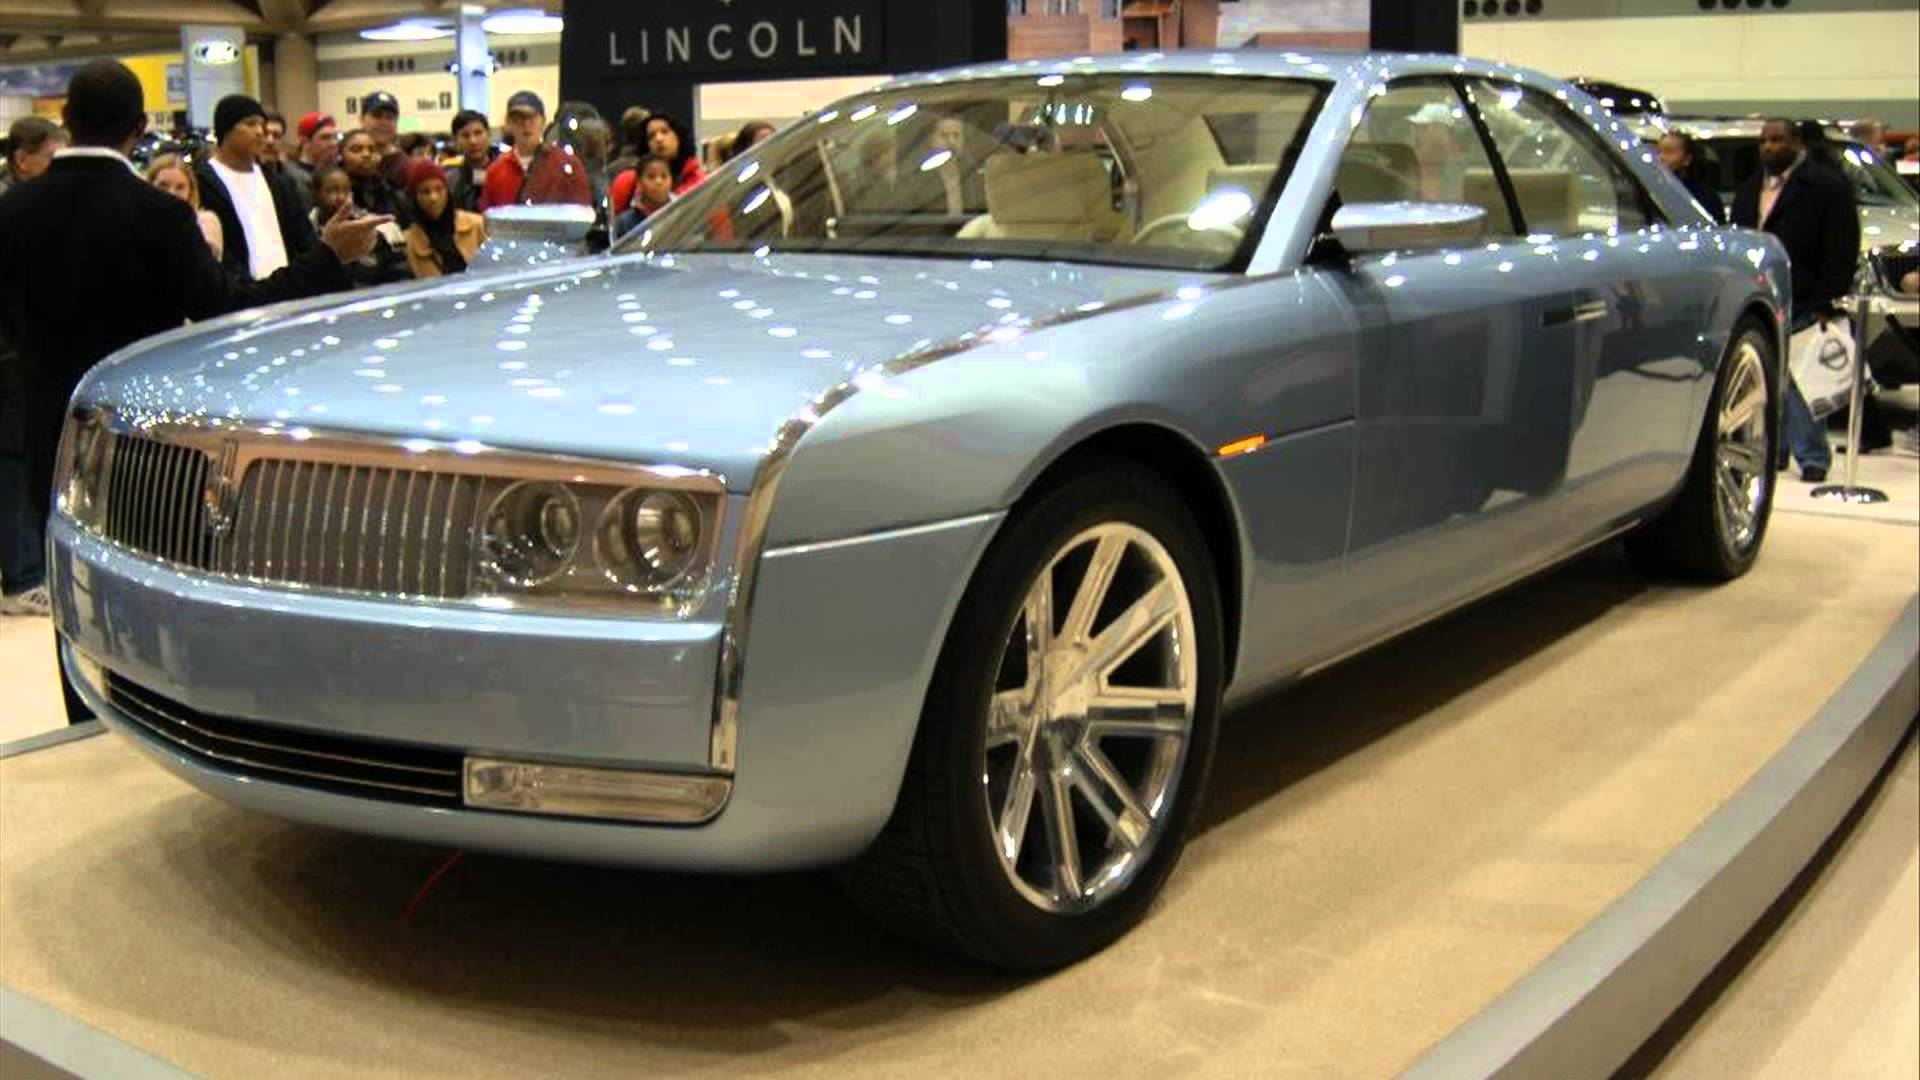 http://www.travelrockers.com/wp-content/uploads/2017/01/2015-Lincoln-Continental-Specs.jpg